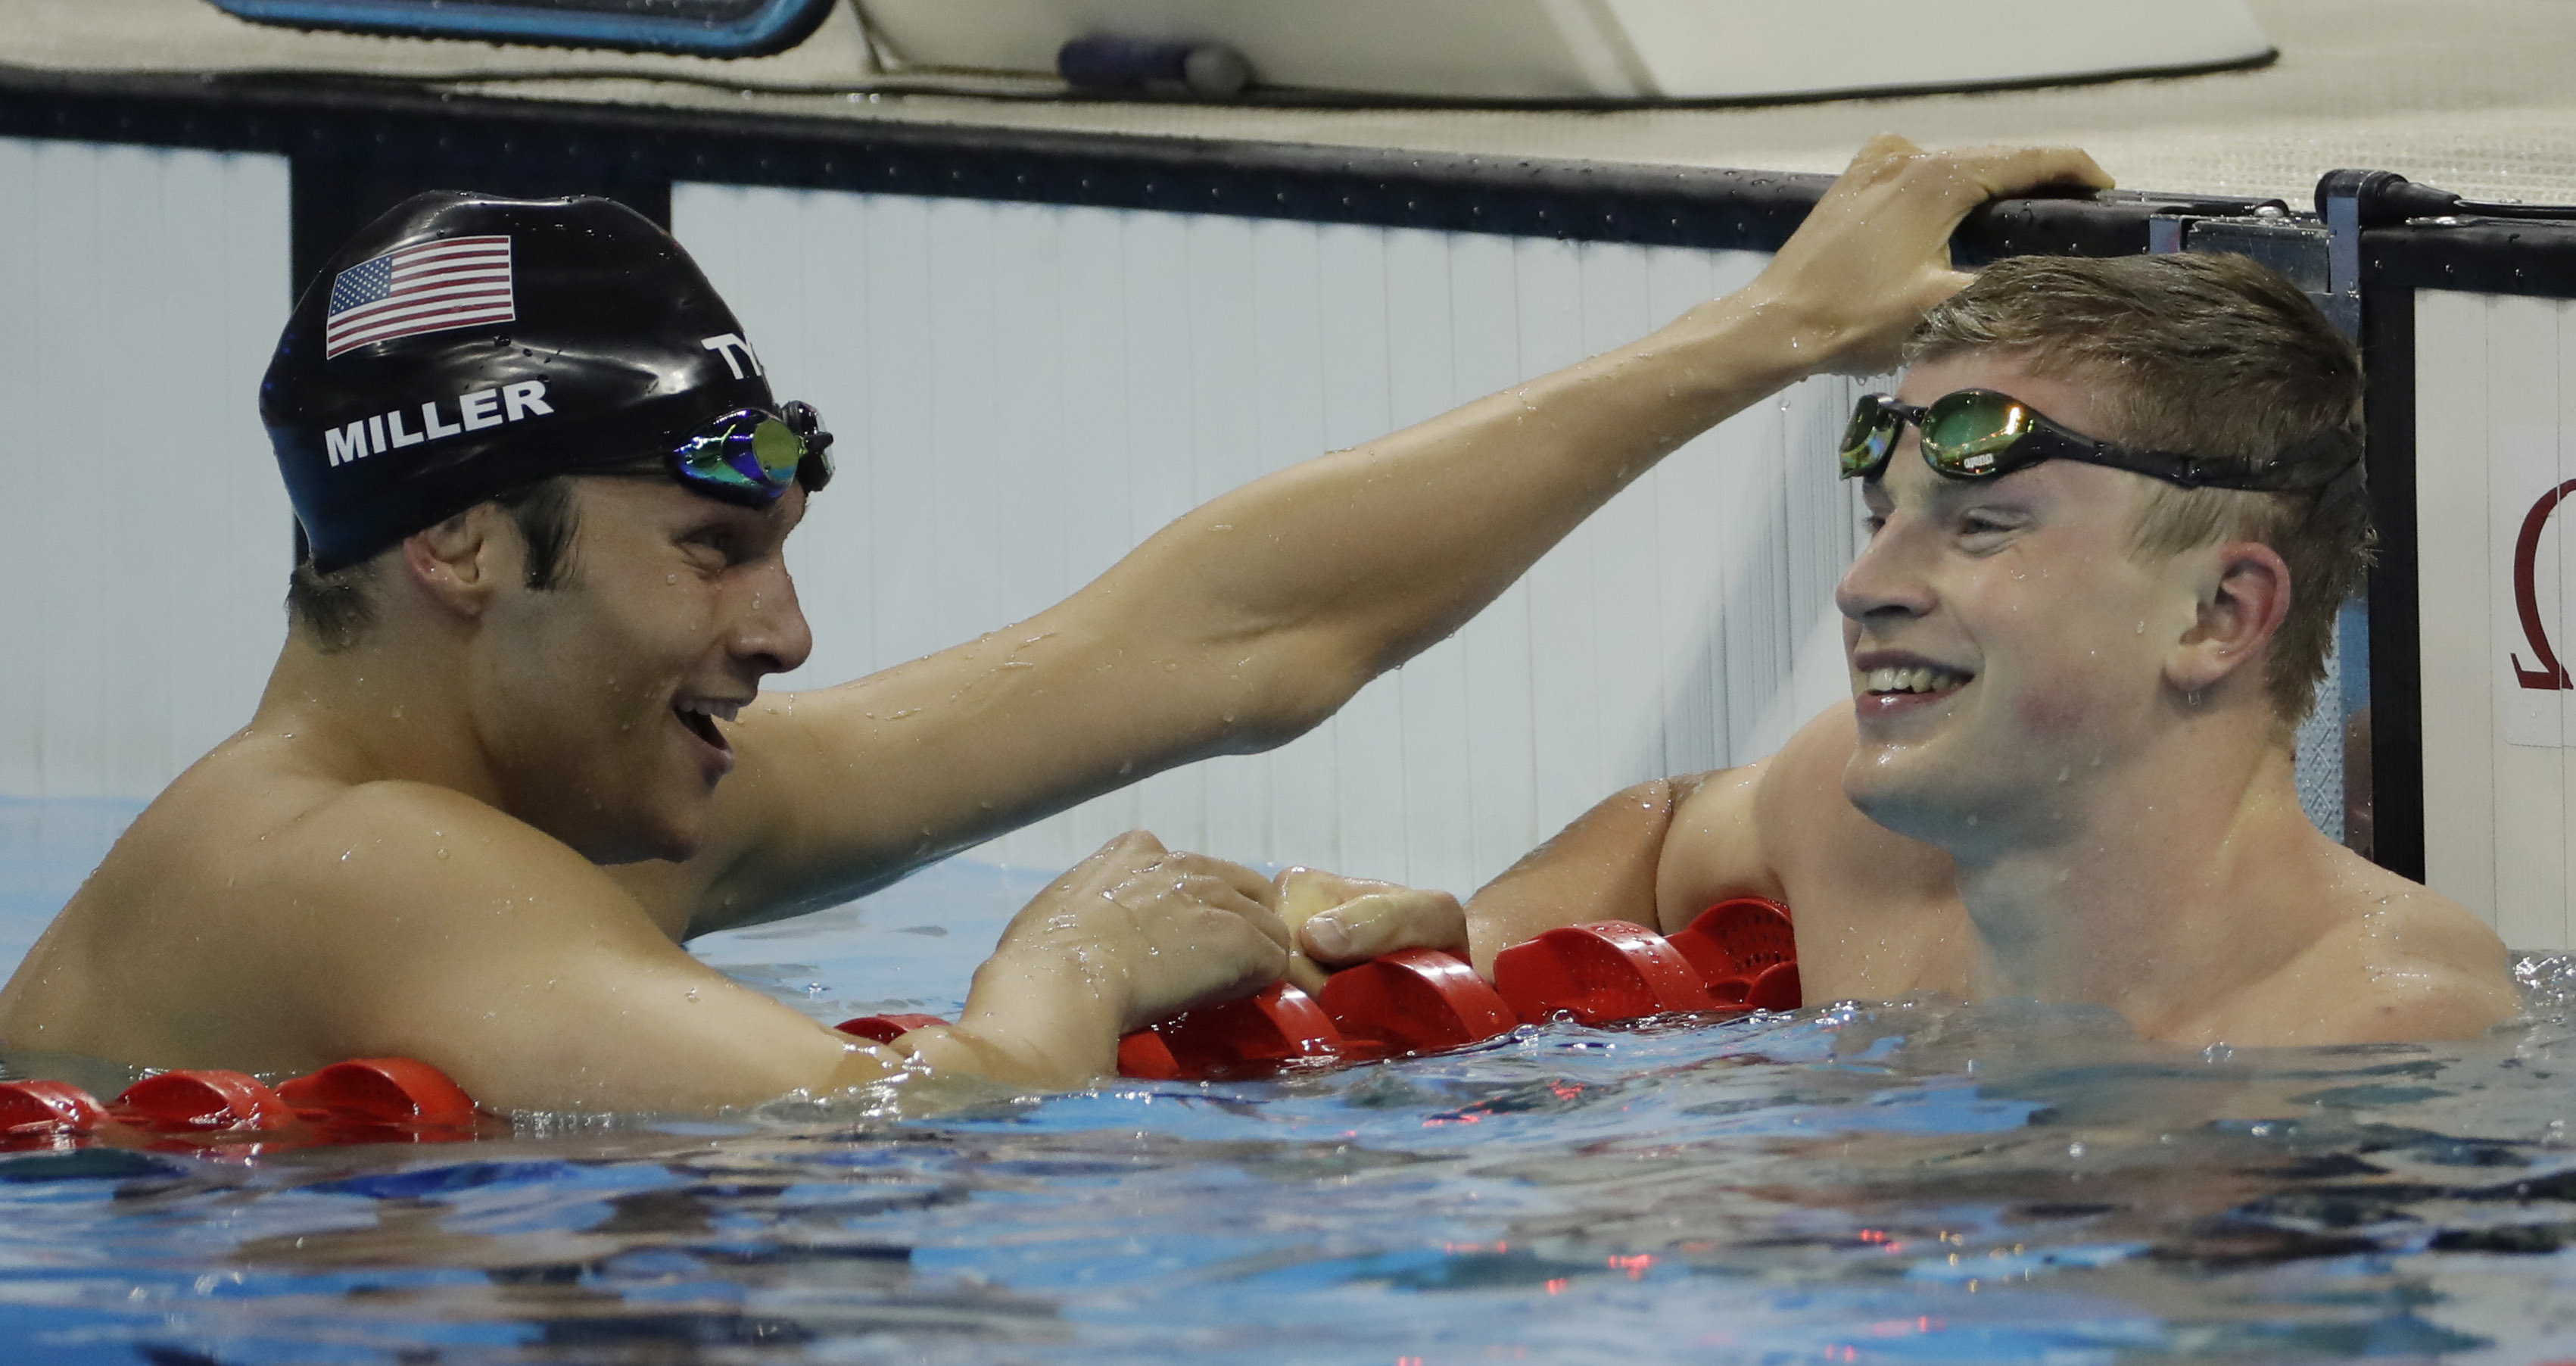 Britain's Adam Peaty, right, and United States' Cody Miller talk after a men's 100-meter breaststroke semifinal during the swimming competitions at the 2016 Summer Olympics, Saturday, Aug. 6, 2016, in Rio de Janeiro, Brazil. (AP Photo/Matt Slocum)